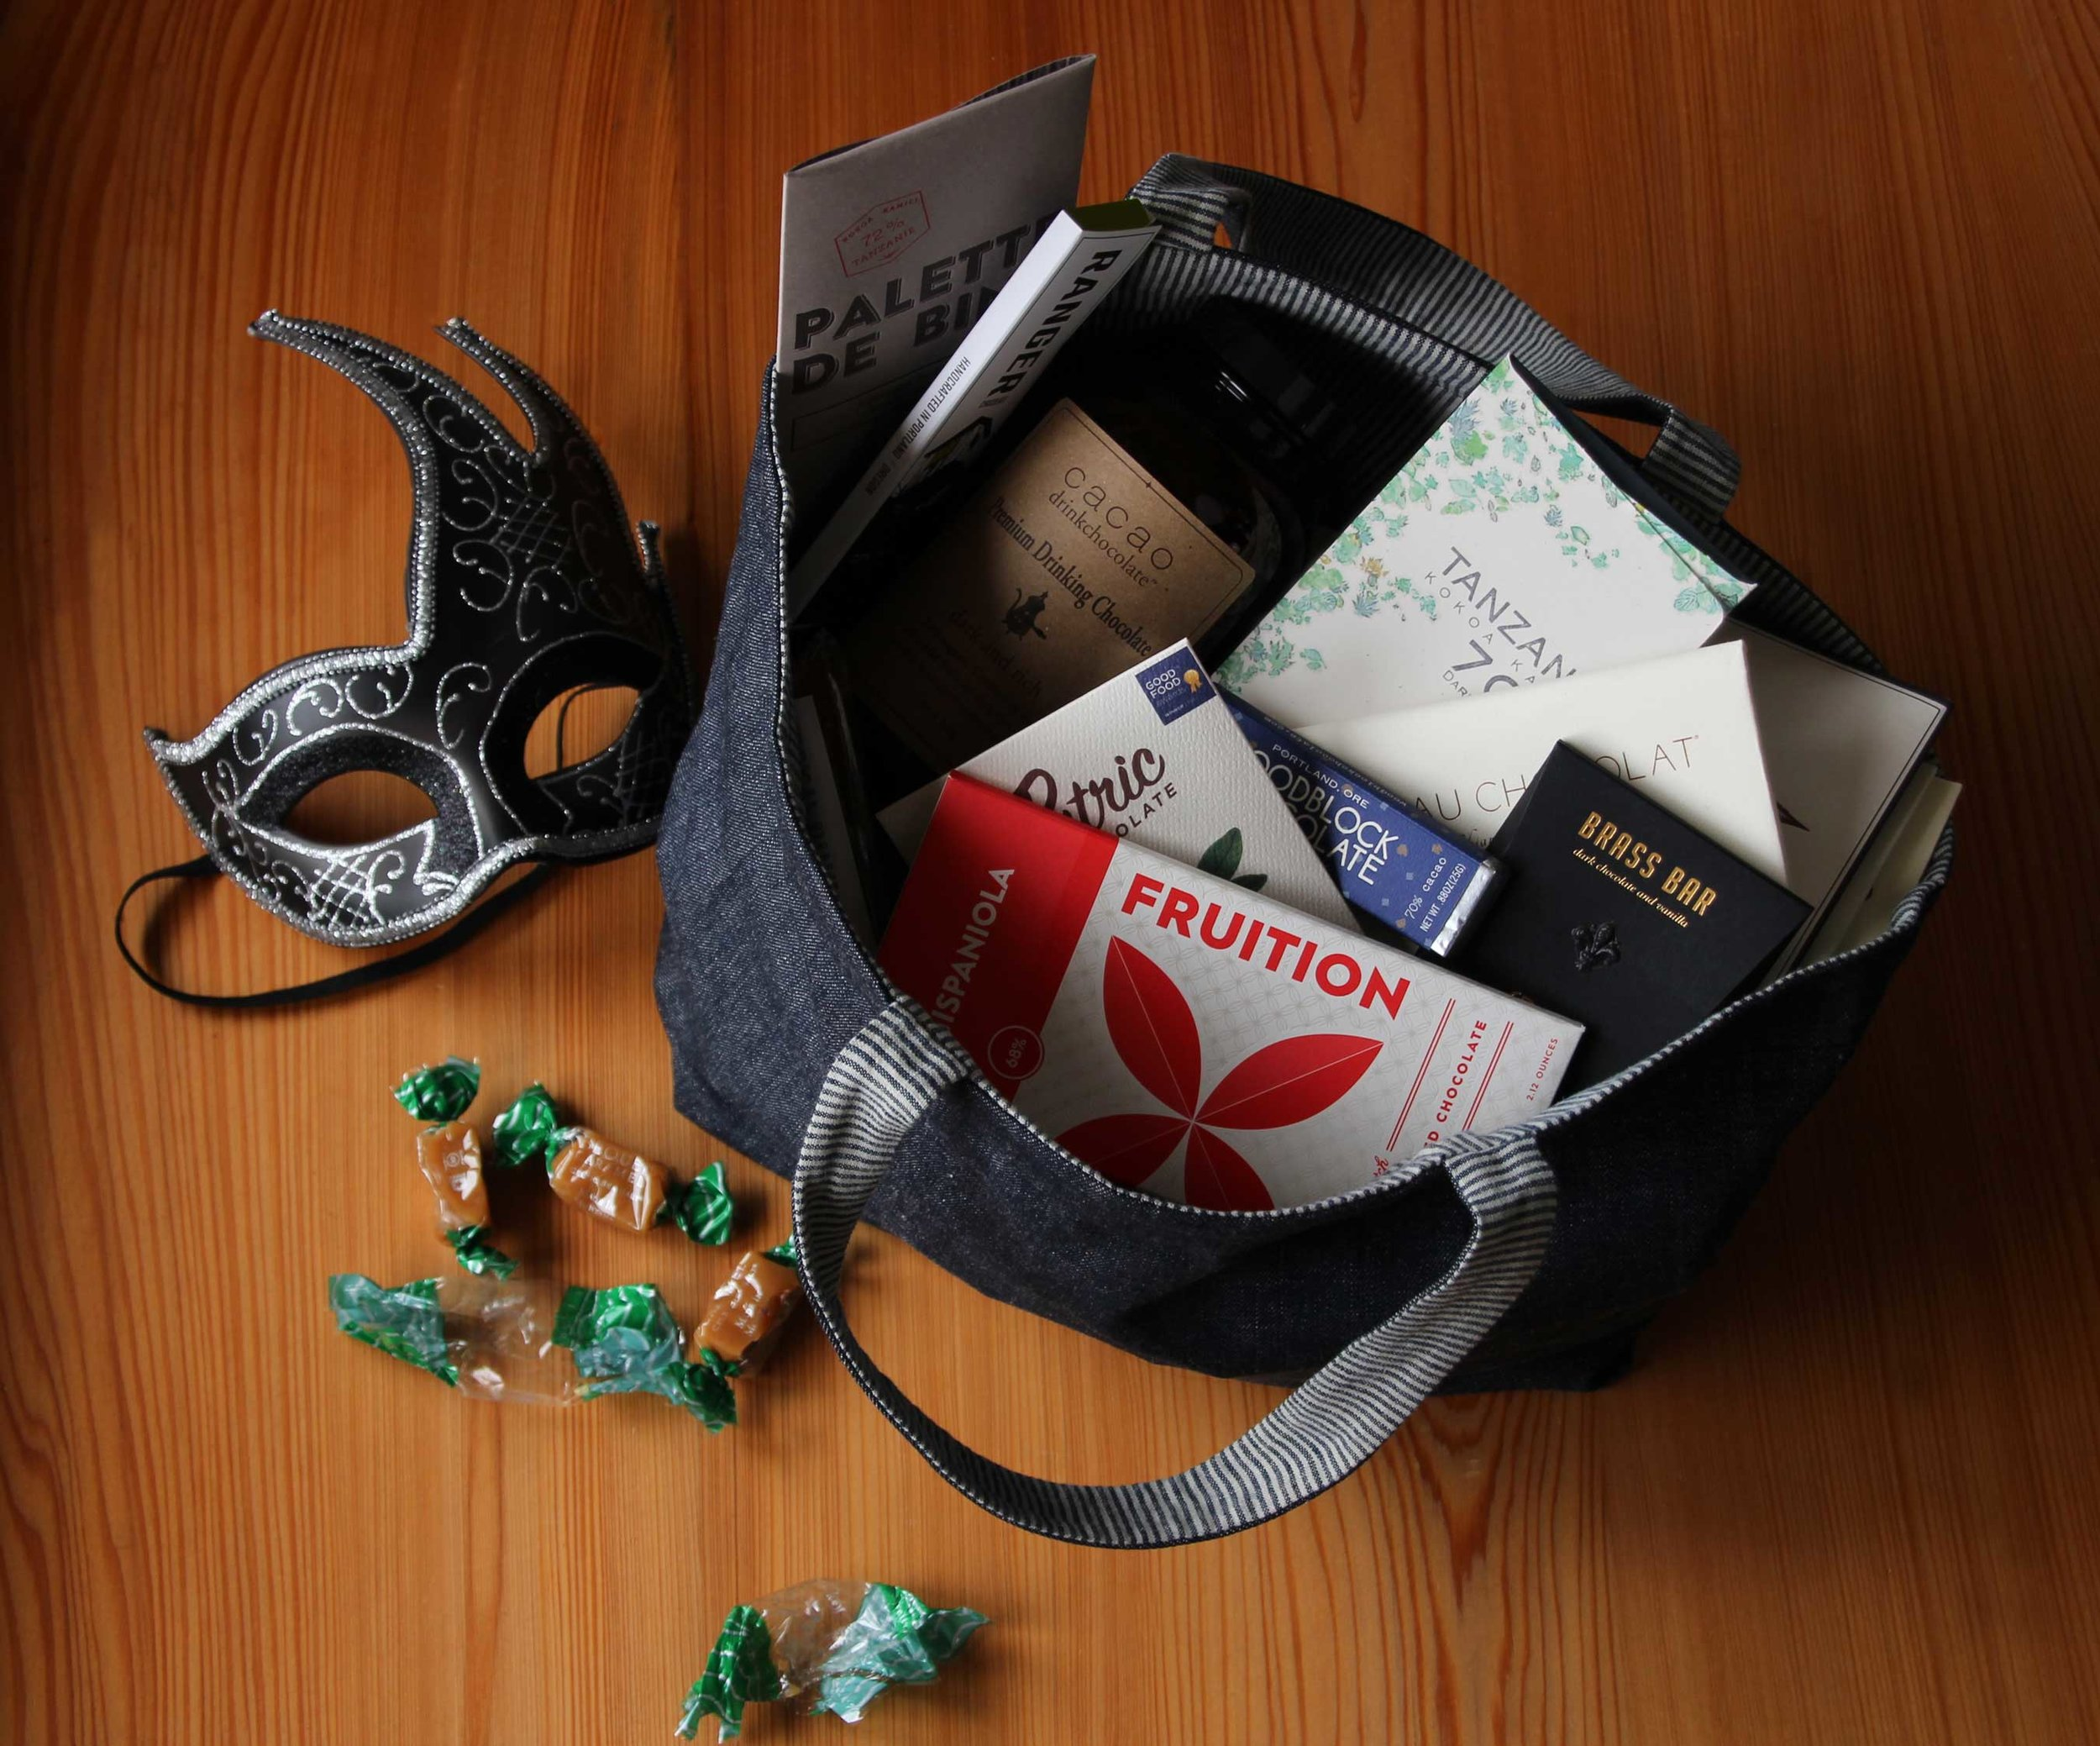 """Handmade denim tote bag filled with artisanal chocolates from our neighborhood Portland store, Cacao. The Béquet salted caramel bits were too good to pass up, so we didn't. Easy totebag """"make"""" tutorial at ThreadandWhisk.com"""